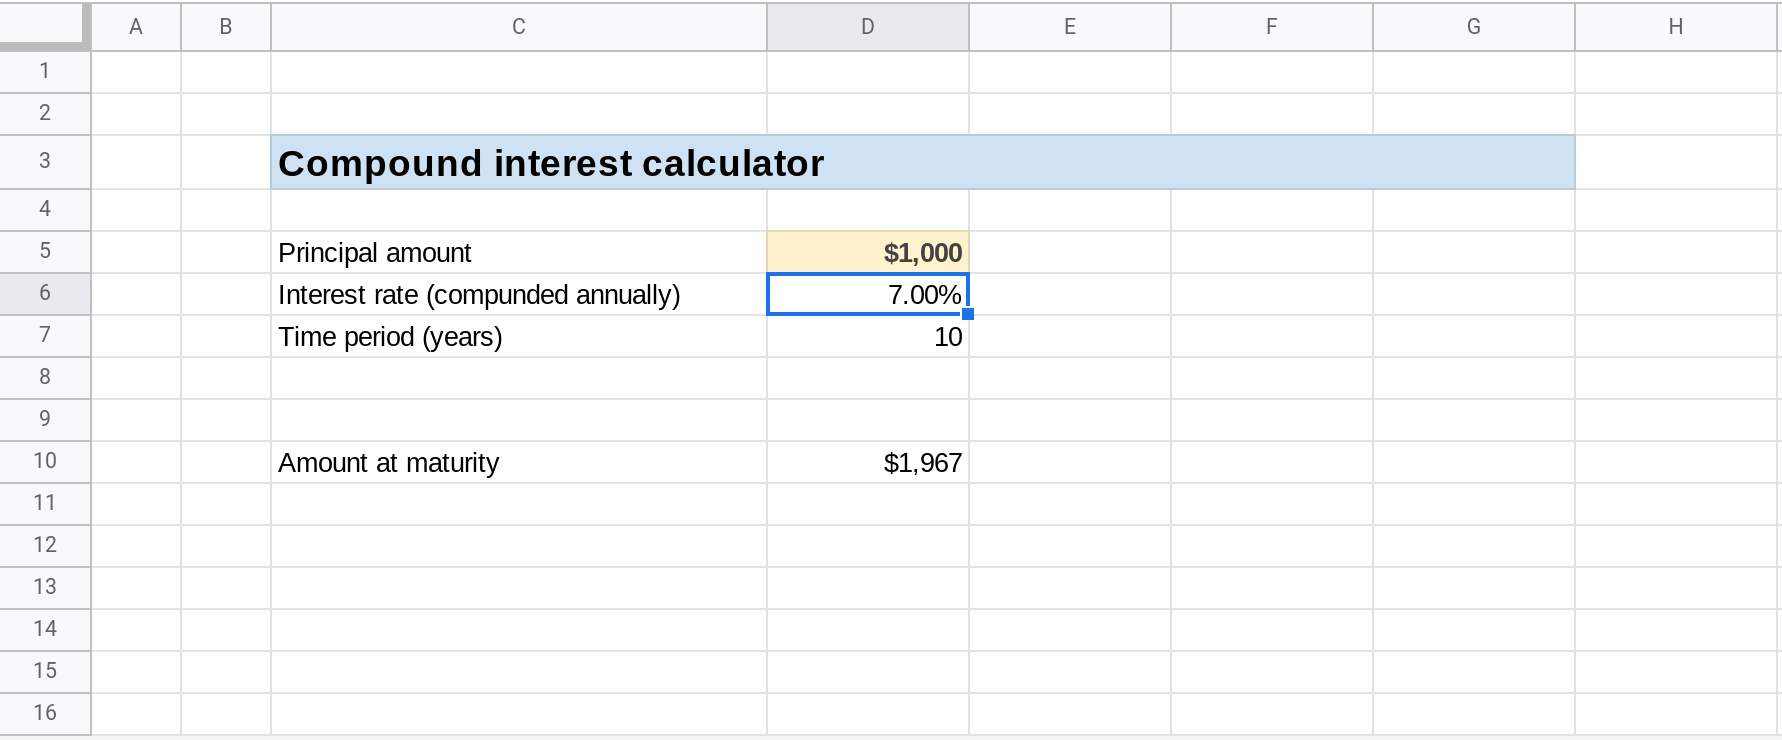 A screenshot of a Google Sheets spreadsheet. The cell D6 is selected.